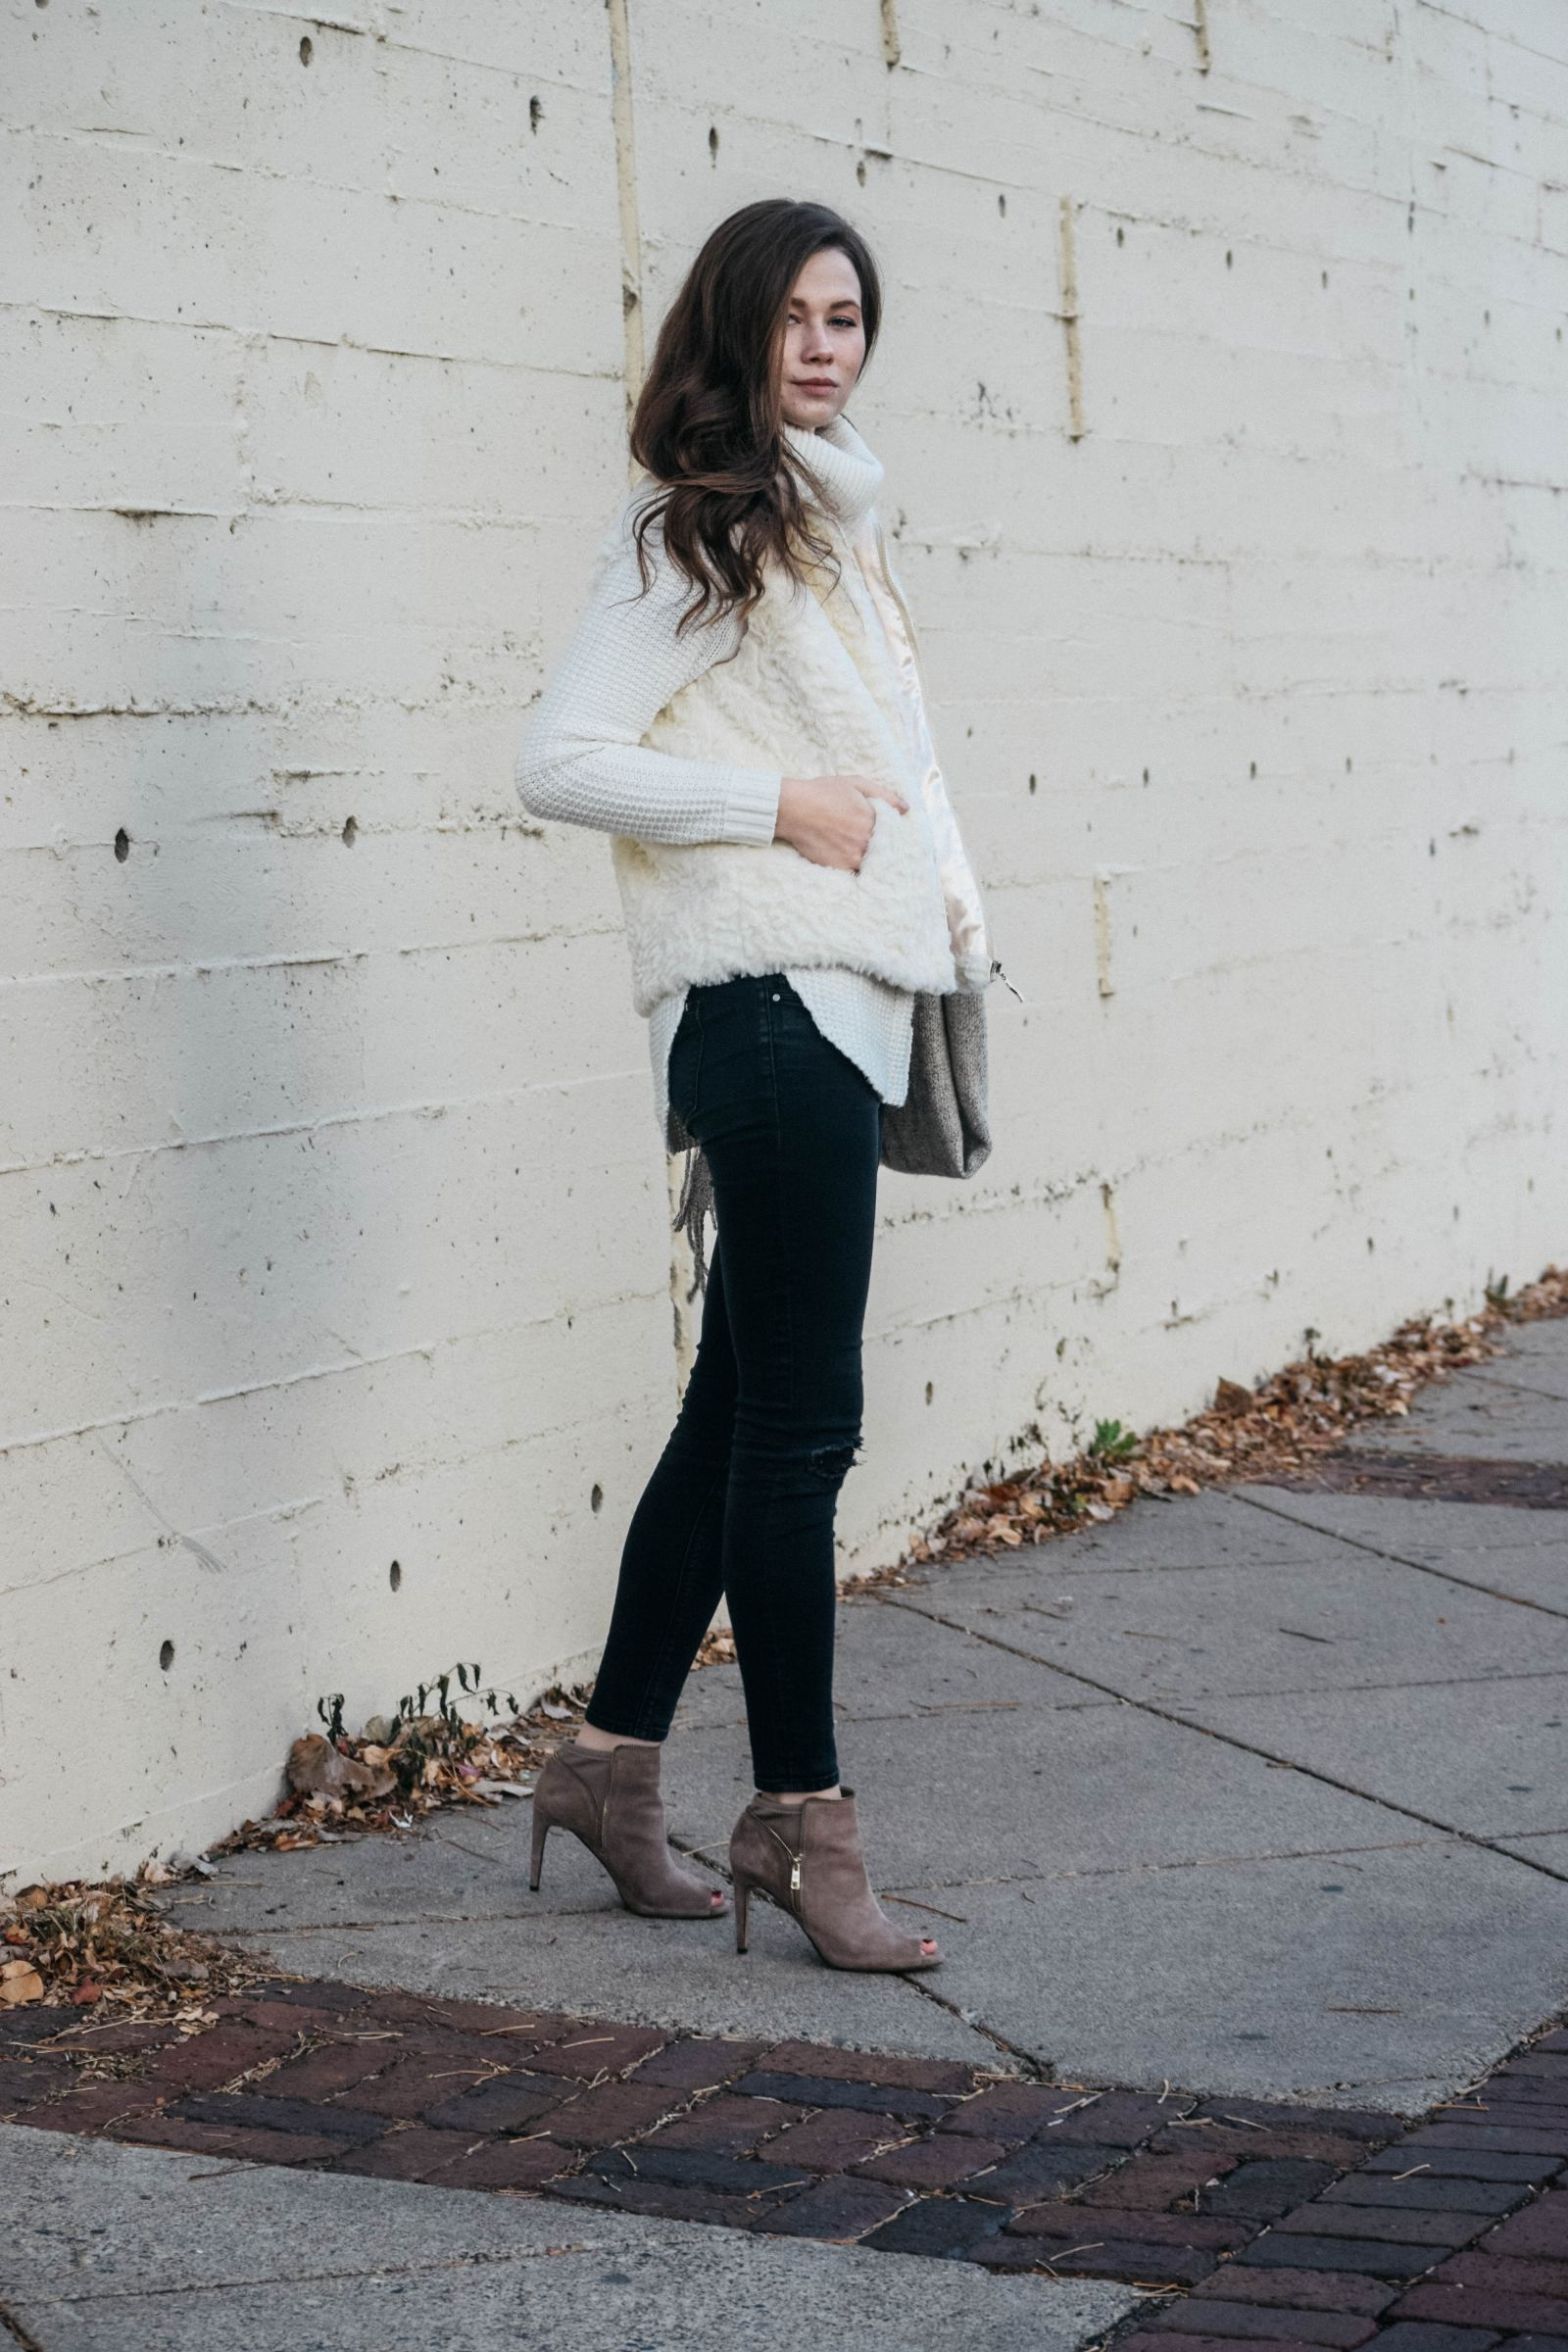 Faux Fur Vest, Holiday Style 2017, Winter Trends, Monochrome Minimalist Colour Series, Vince Camuto, Tan Heeled Booties, Ann Taylor